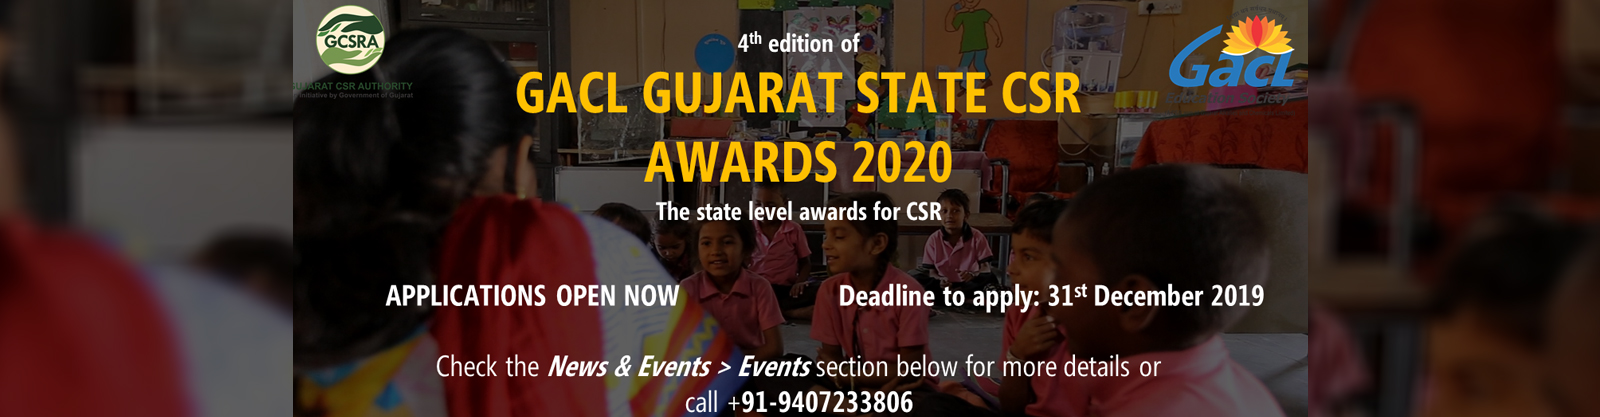 GACL Gujarat State CSR Awards 2020